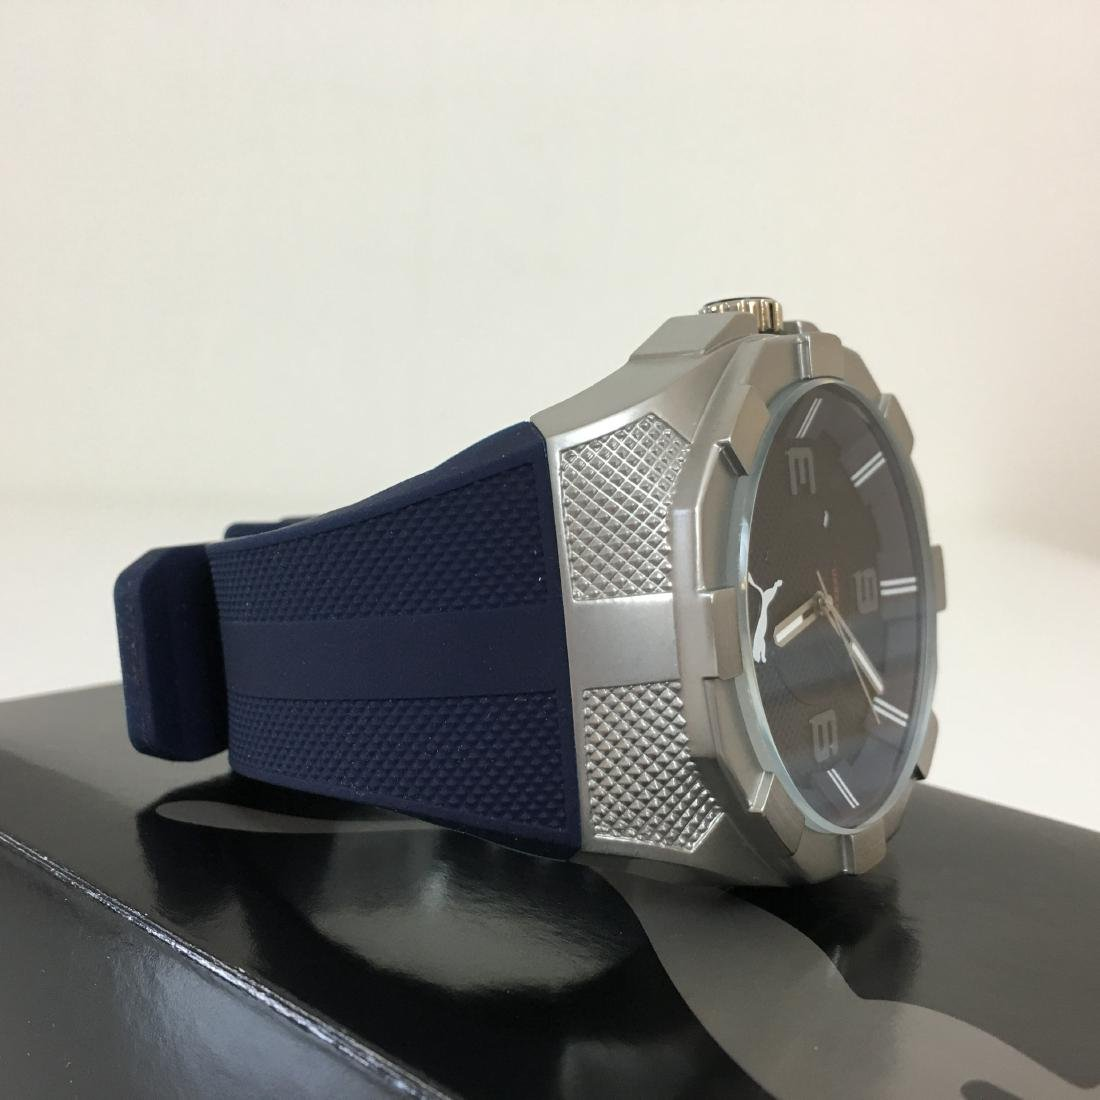 PUMA Iconic Blue Silicone Display Watch With Box - 8